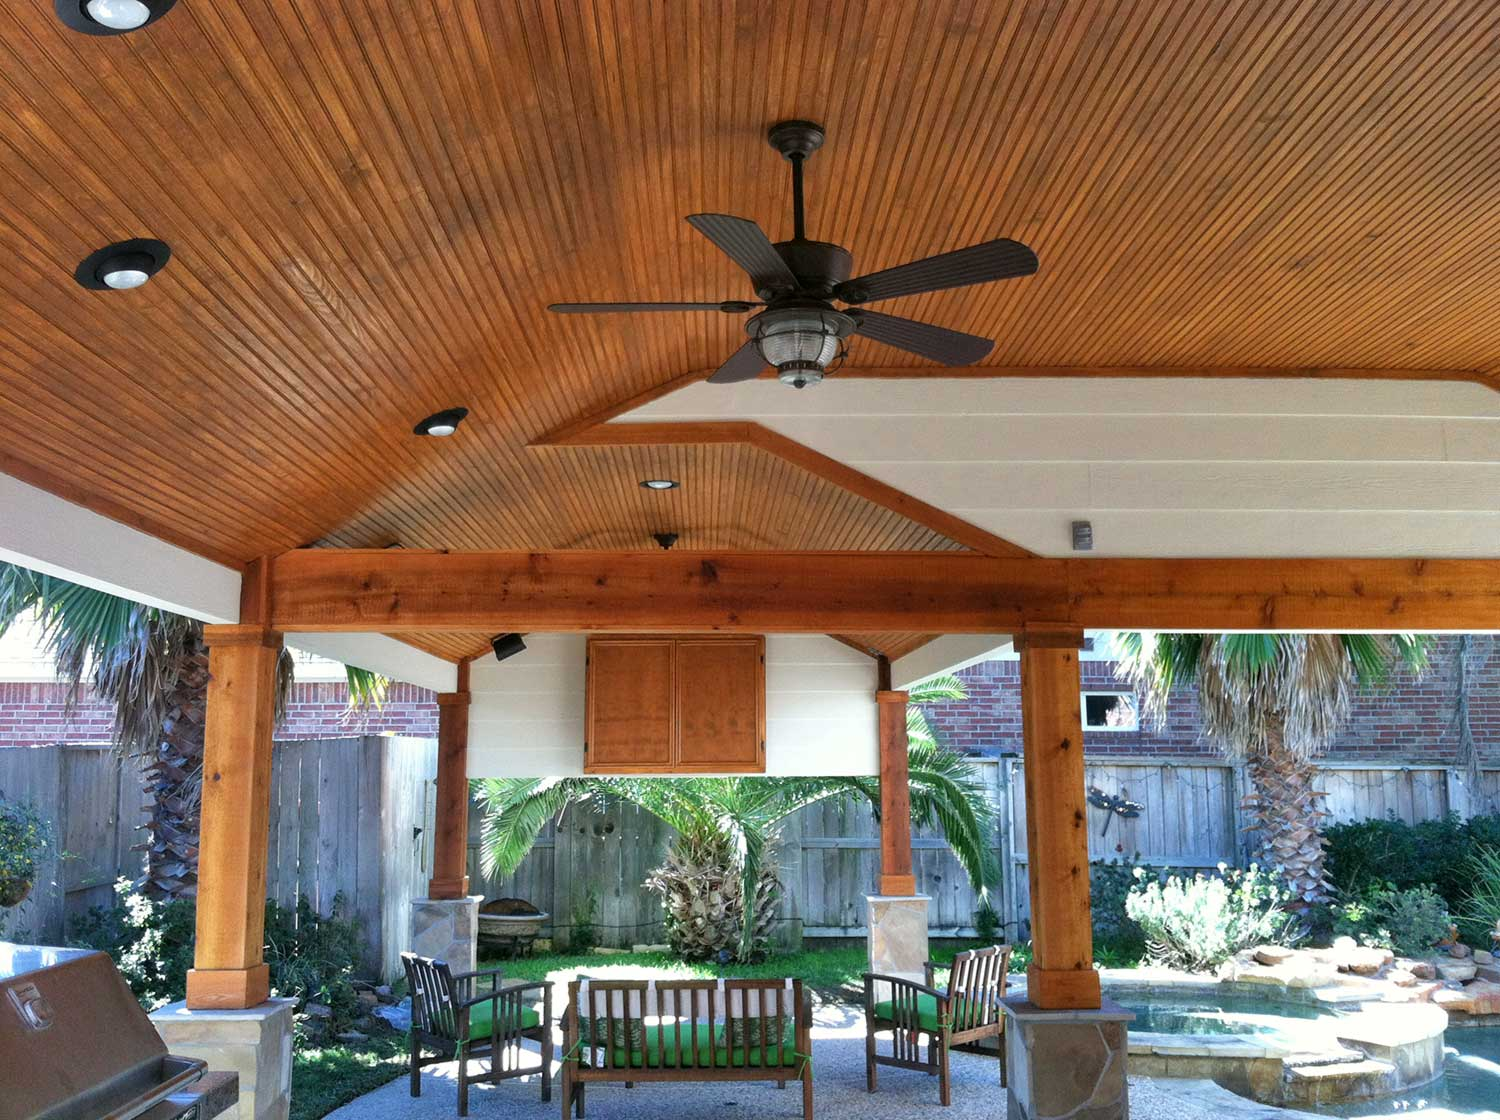 patio cover with wood columns and outdoor kitchen - hhi patio covers